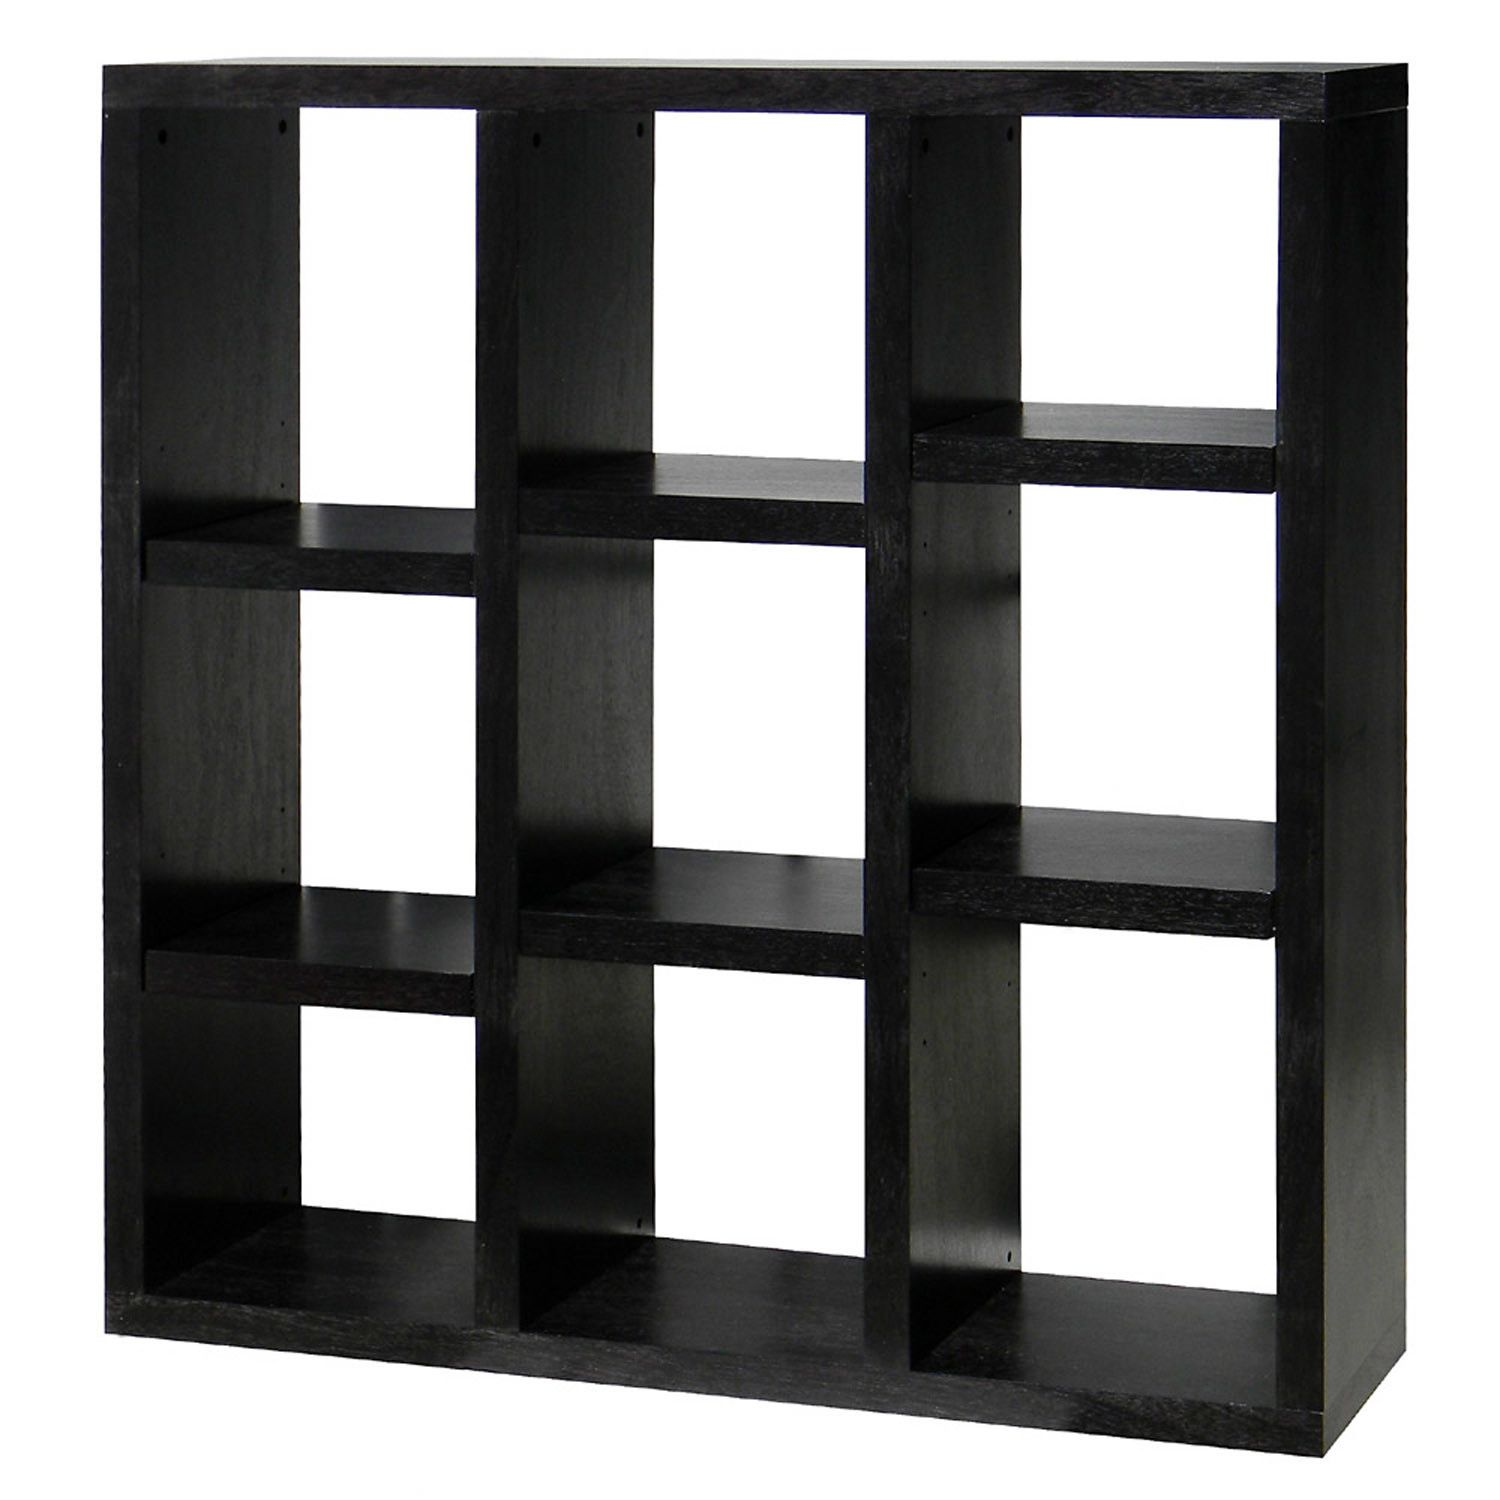 Twenty 9 Cube Bookcases Shelves And Storage Options Cube